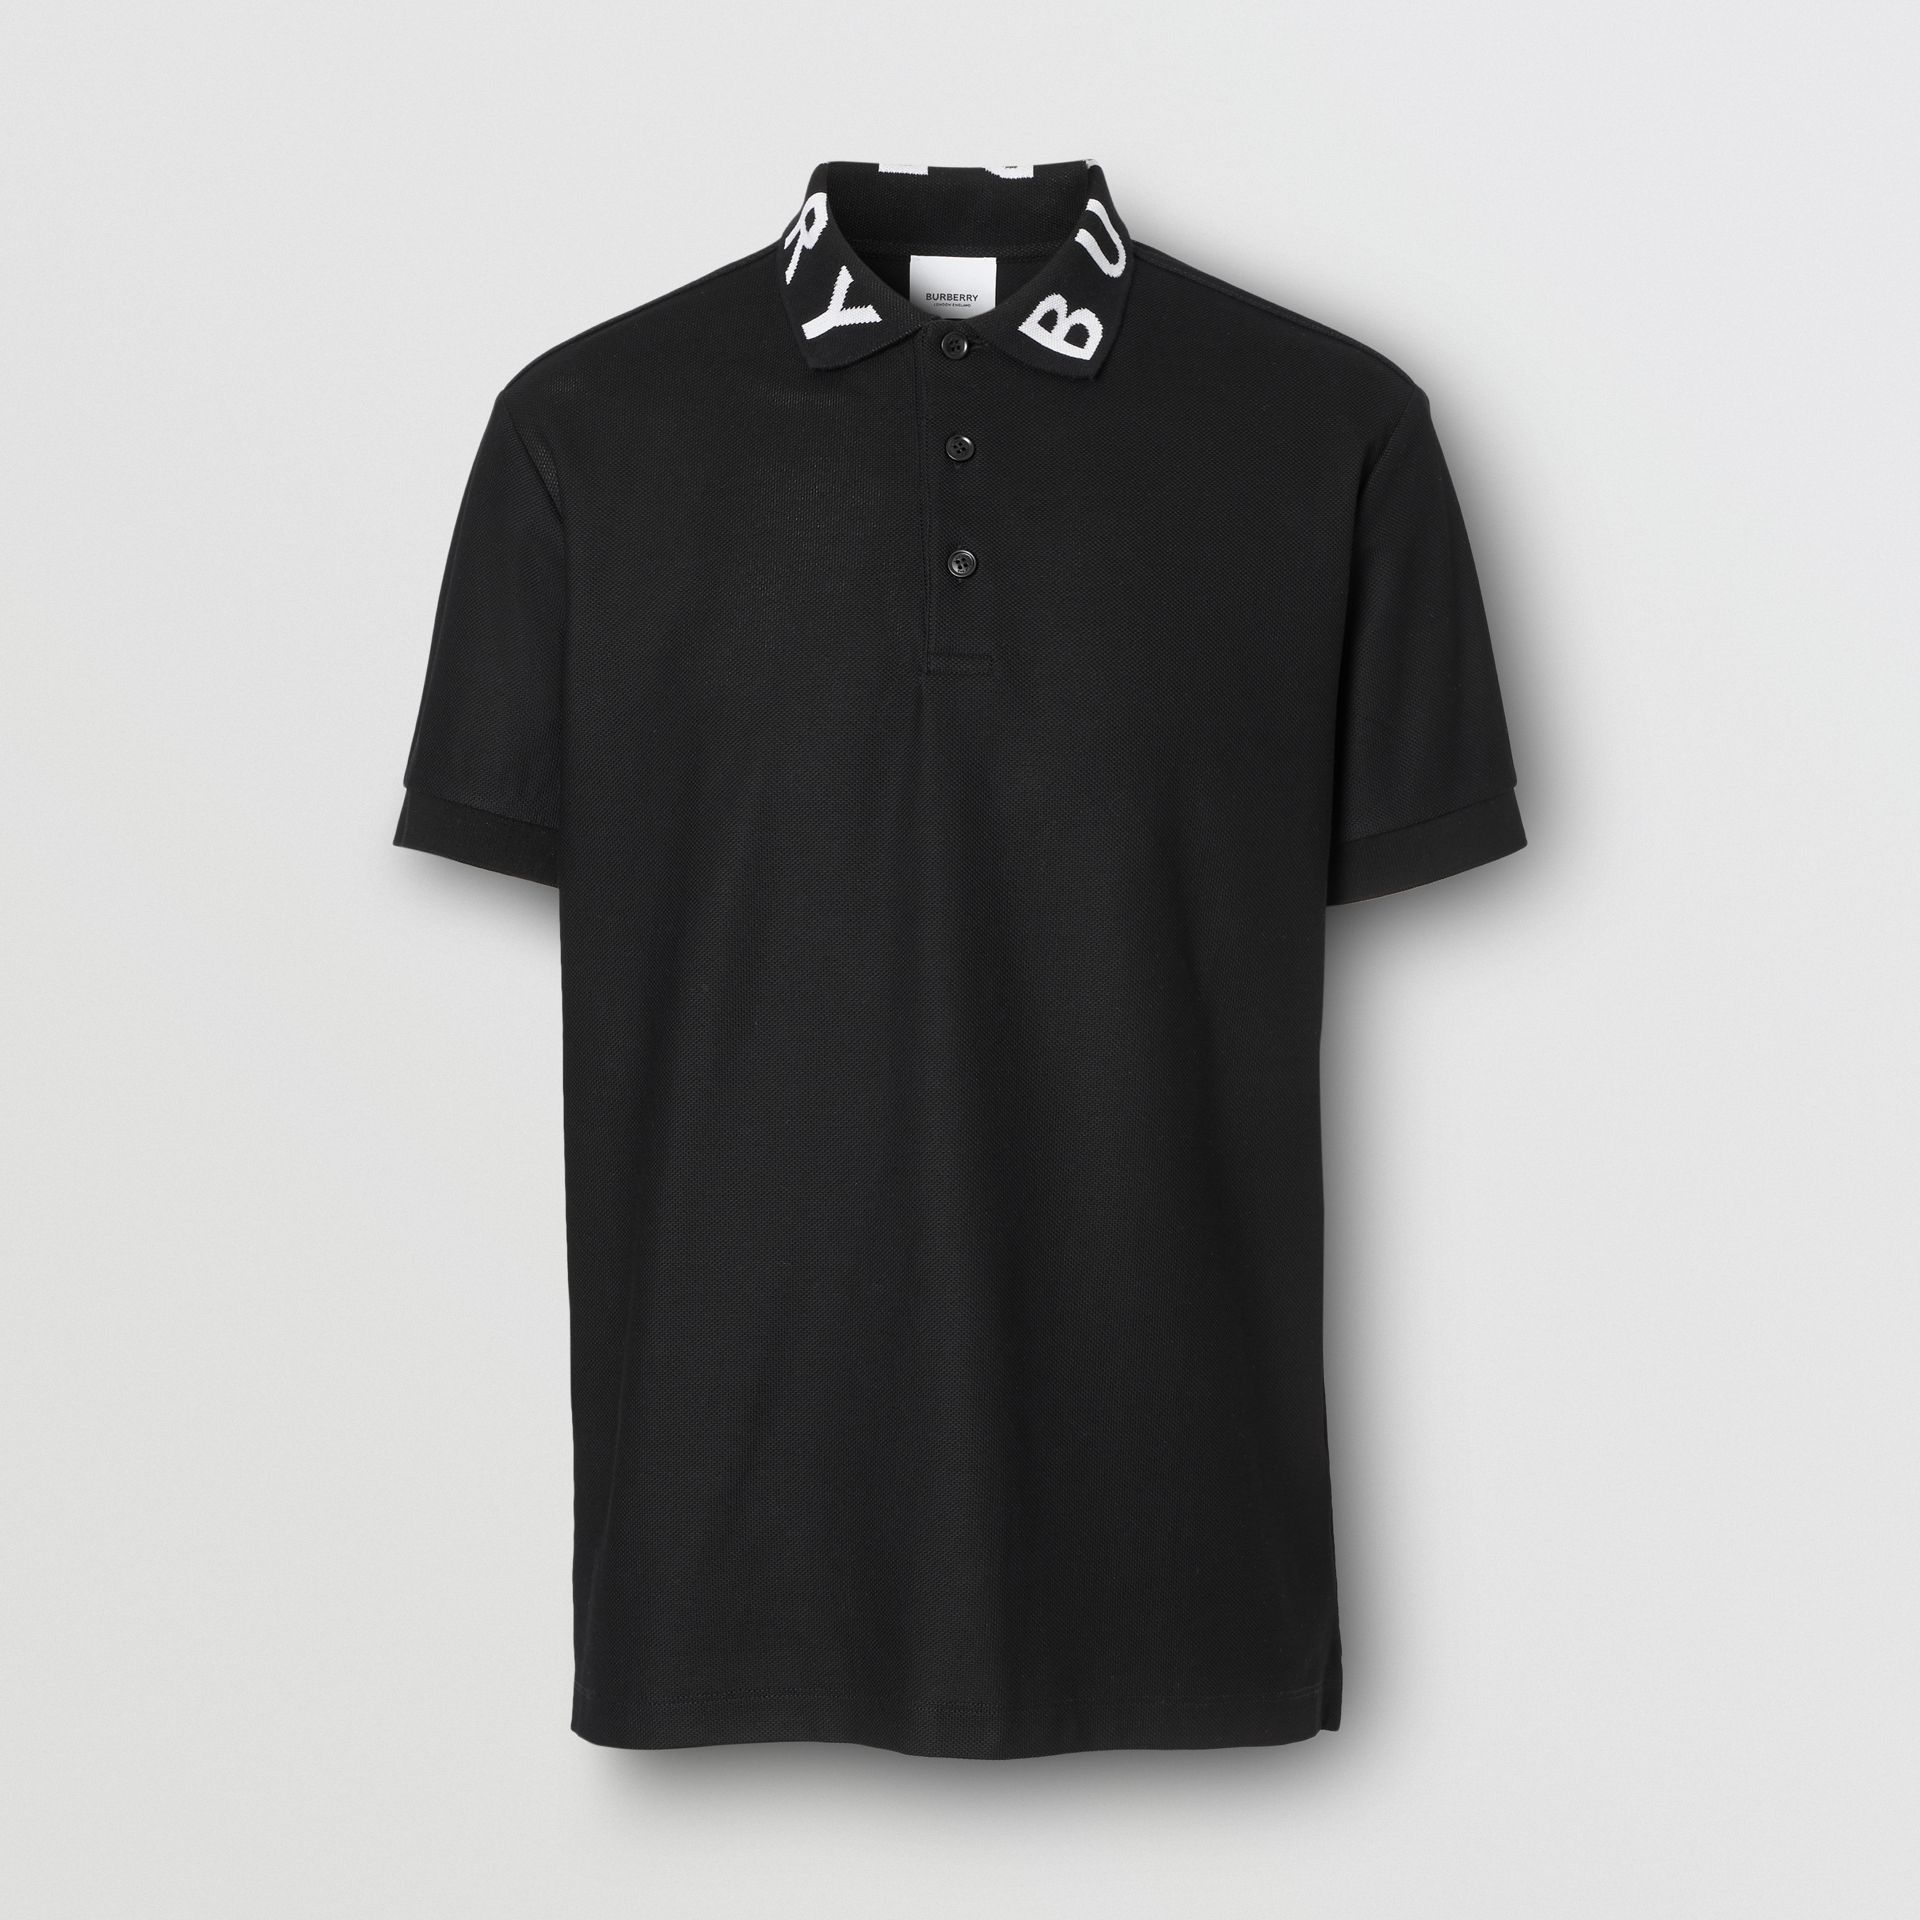 Logo Intarsia Cotton Piqué Polo Shirt in Black - Men | Burberry Hong Kong S.A.R - gallery image 3